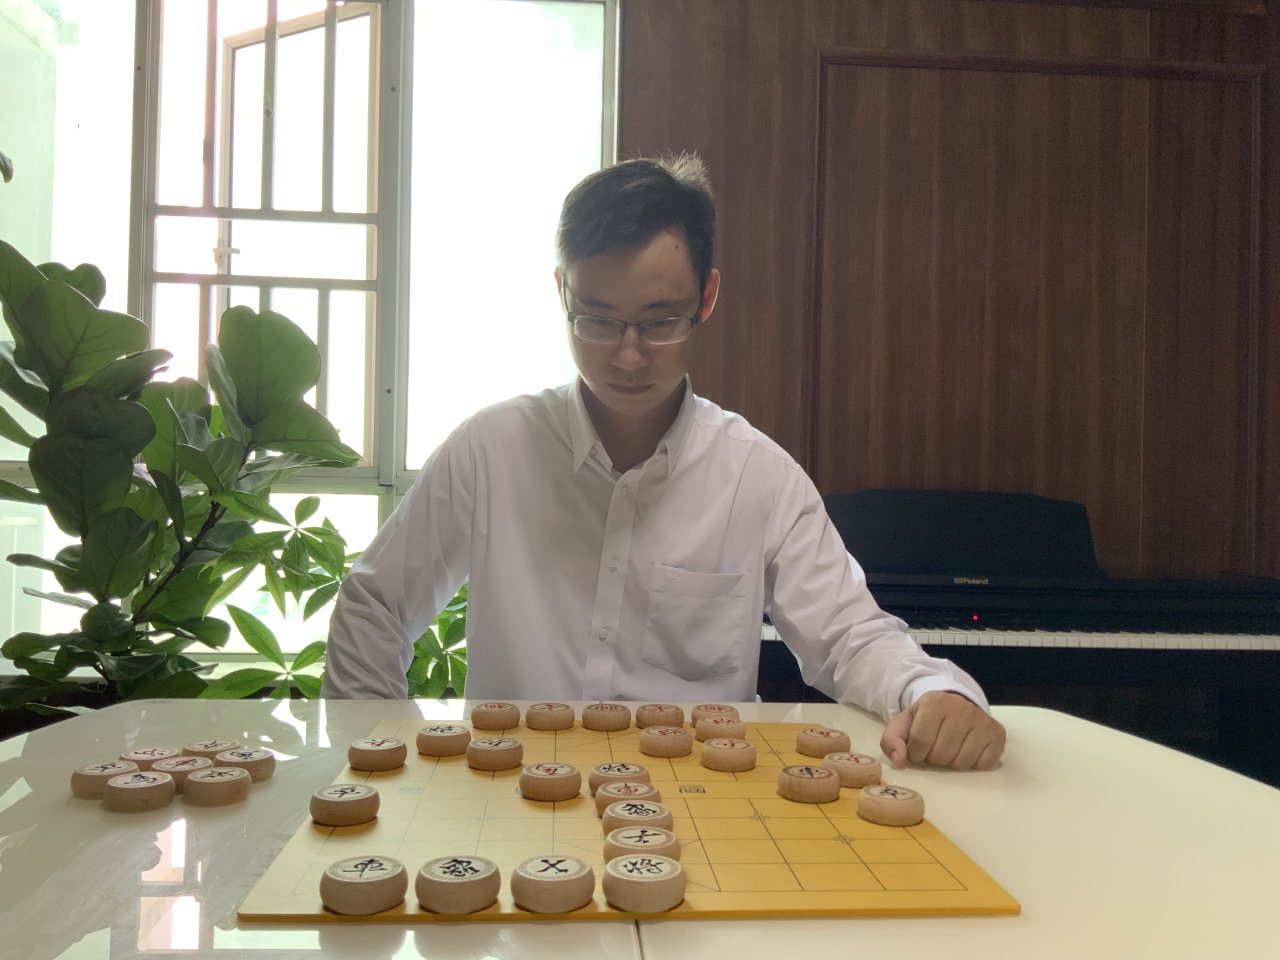 Vietnam university math lecturer finds 'escape' in Chinese chess commentary